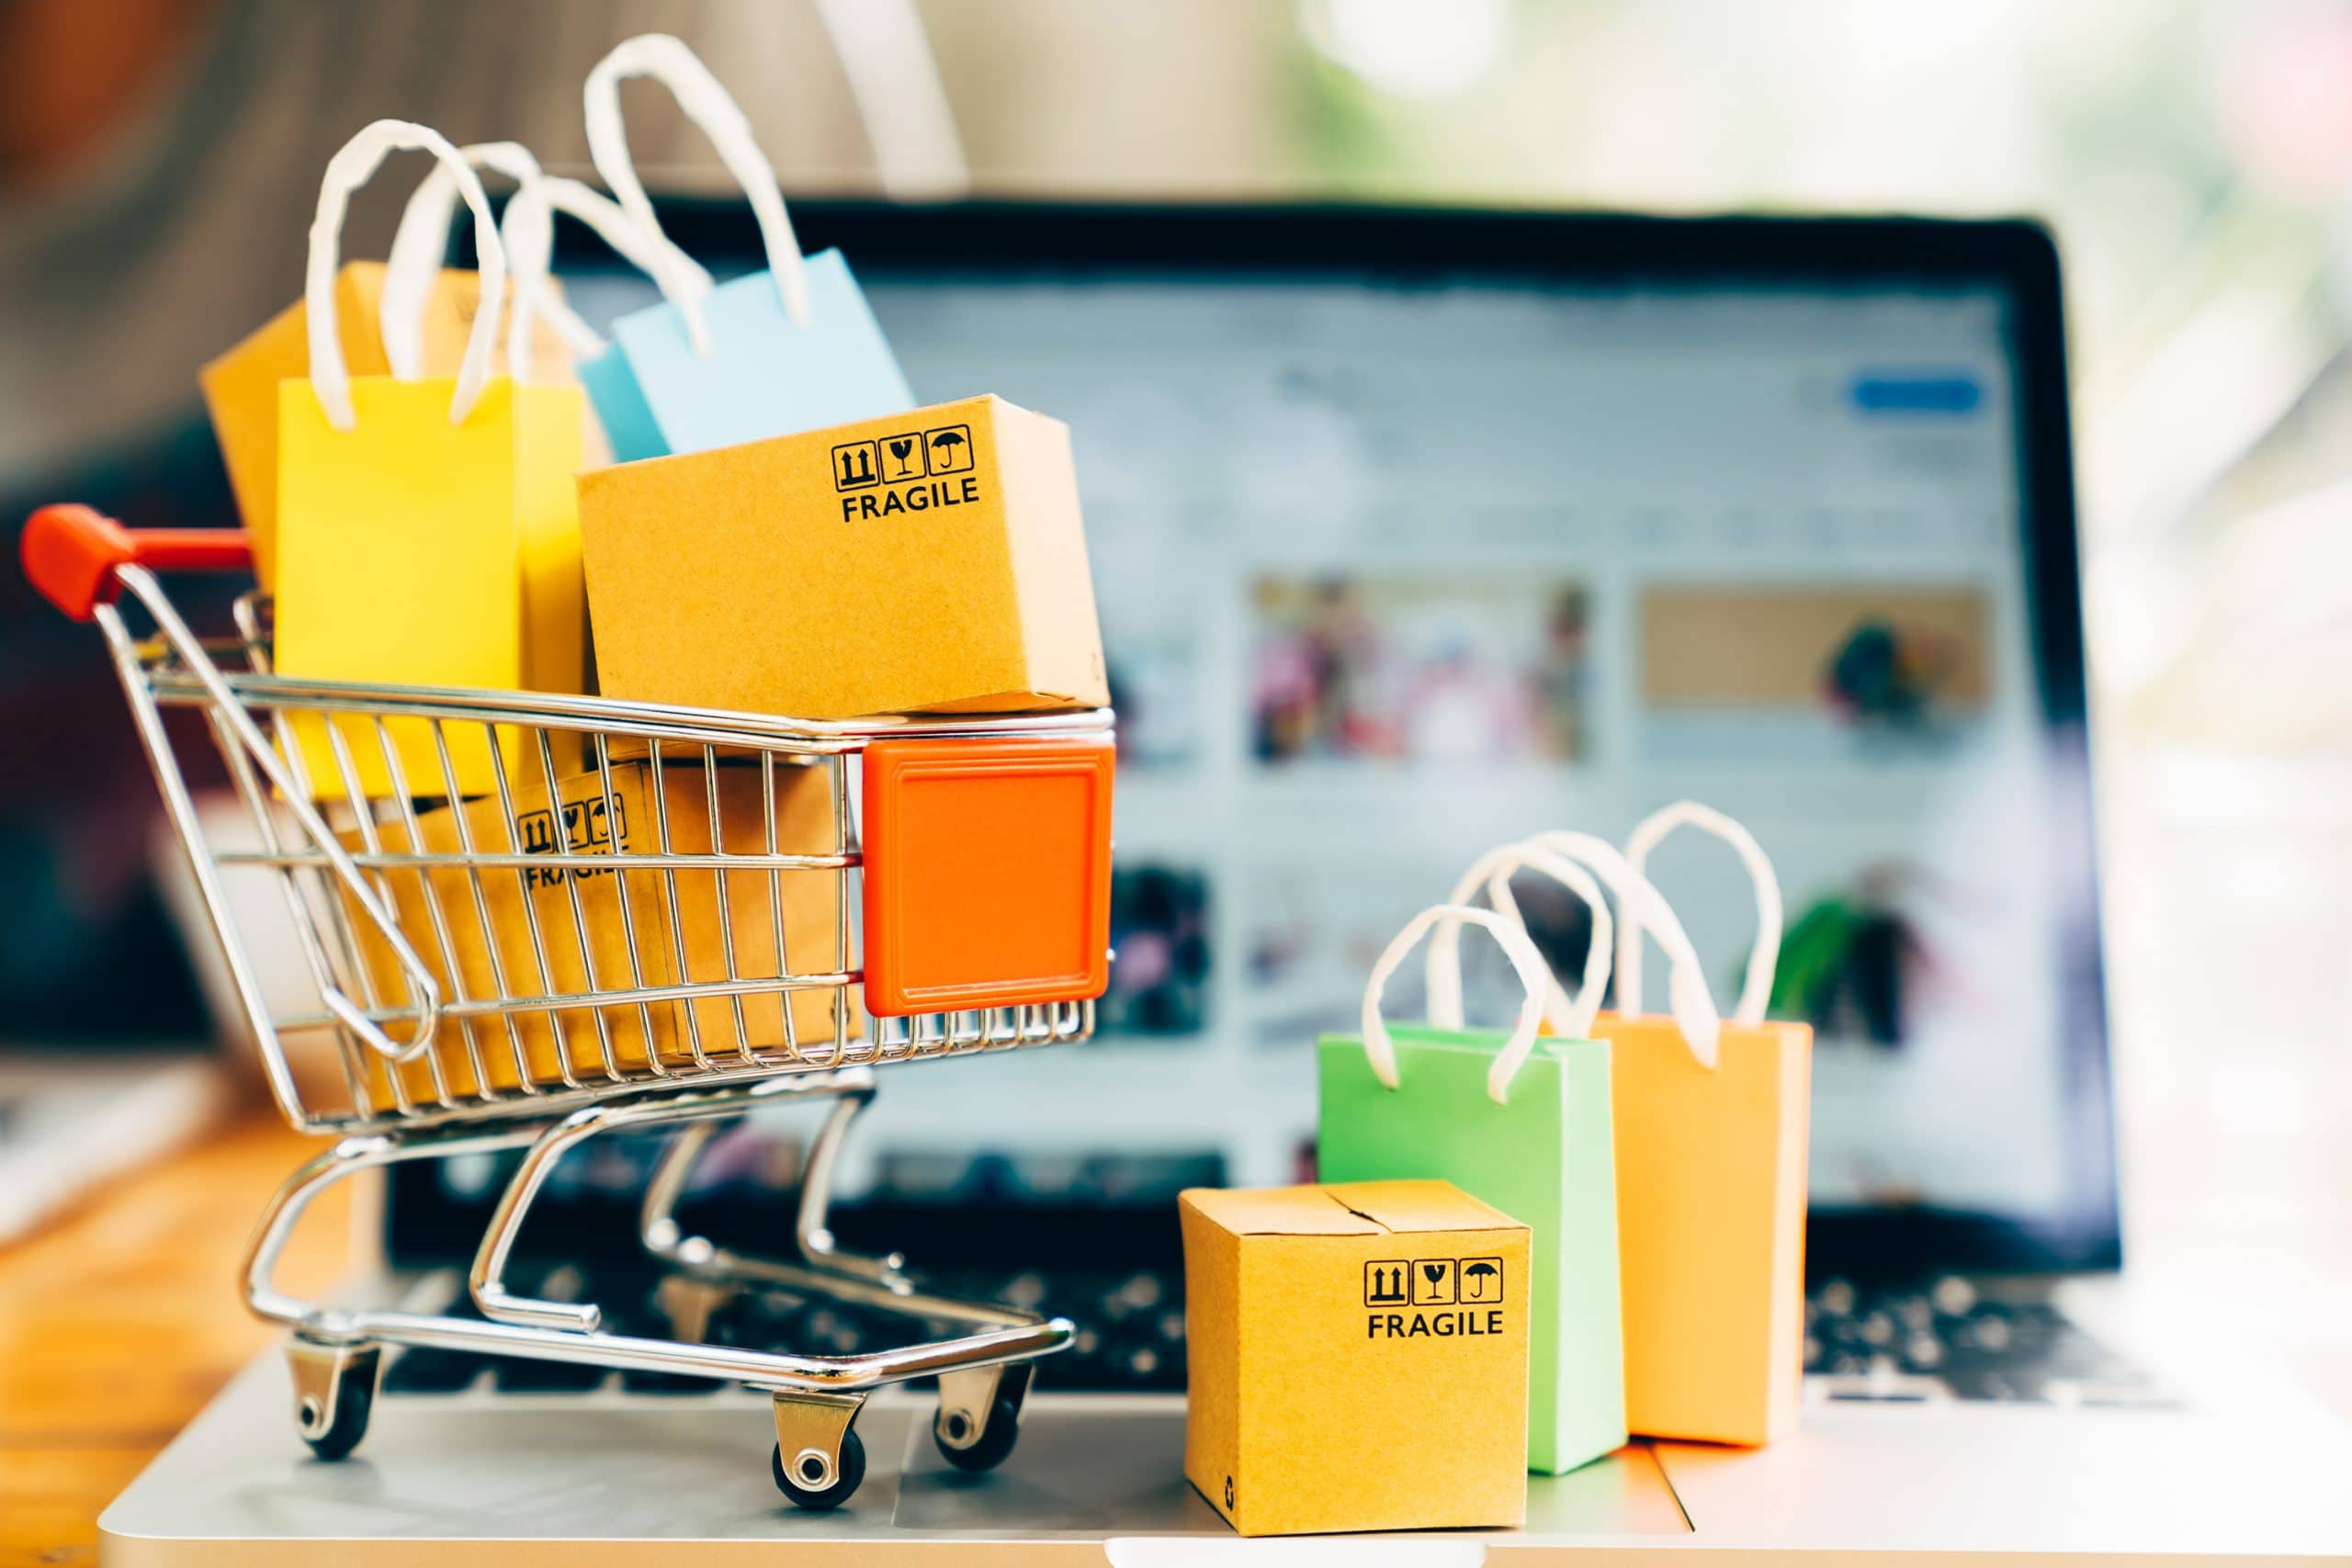 Thumbnail of Shopping Addiction Fueled By Online Shopping